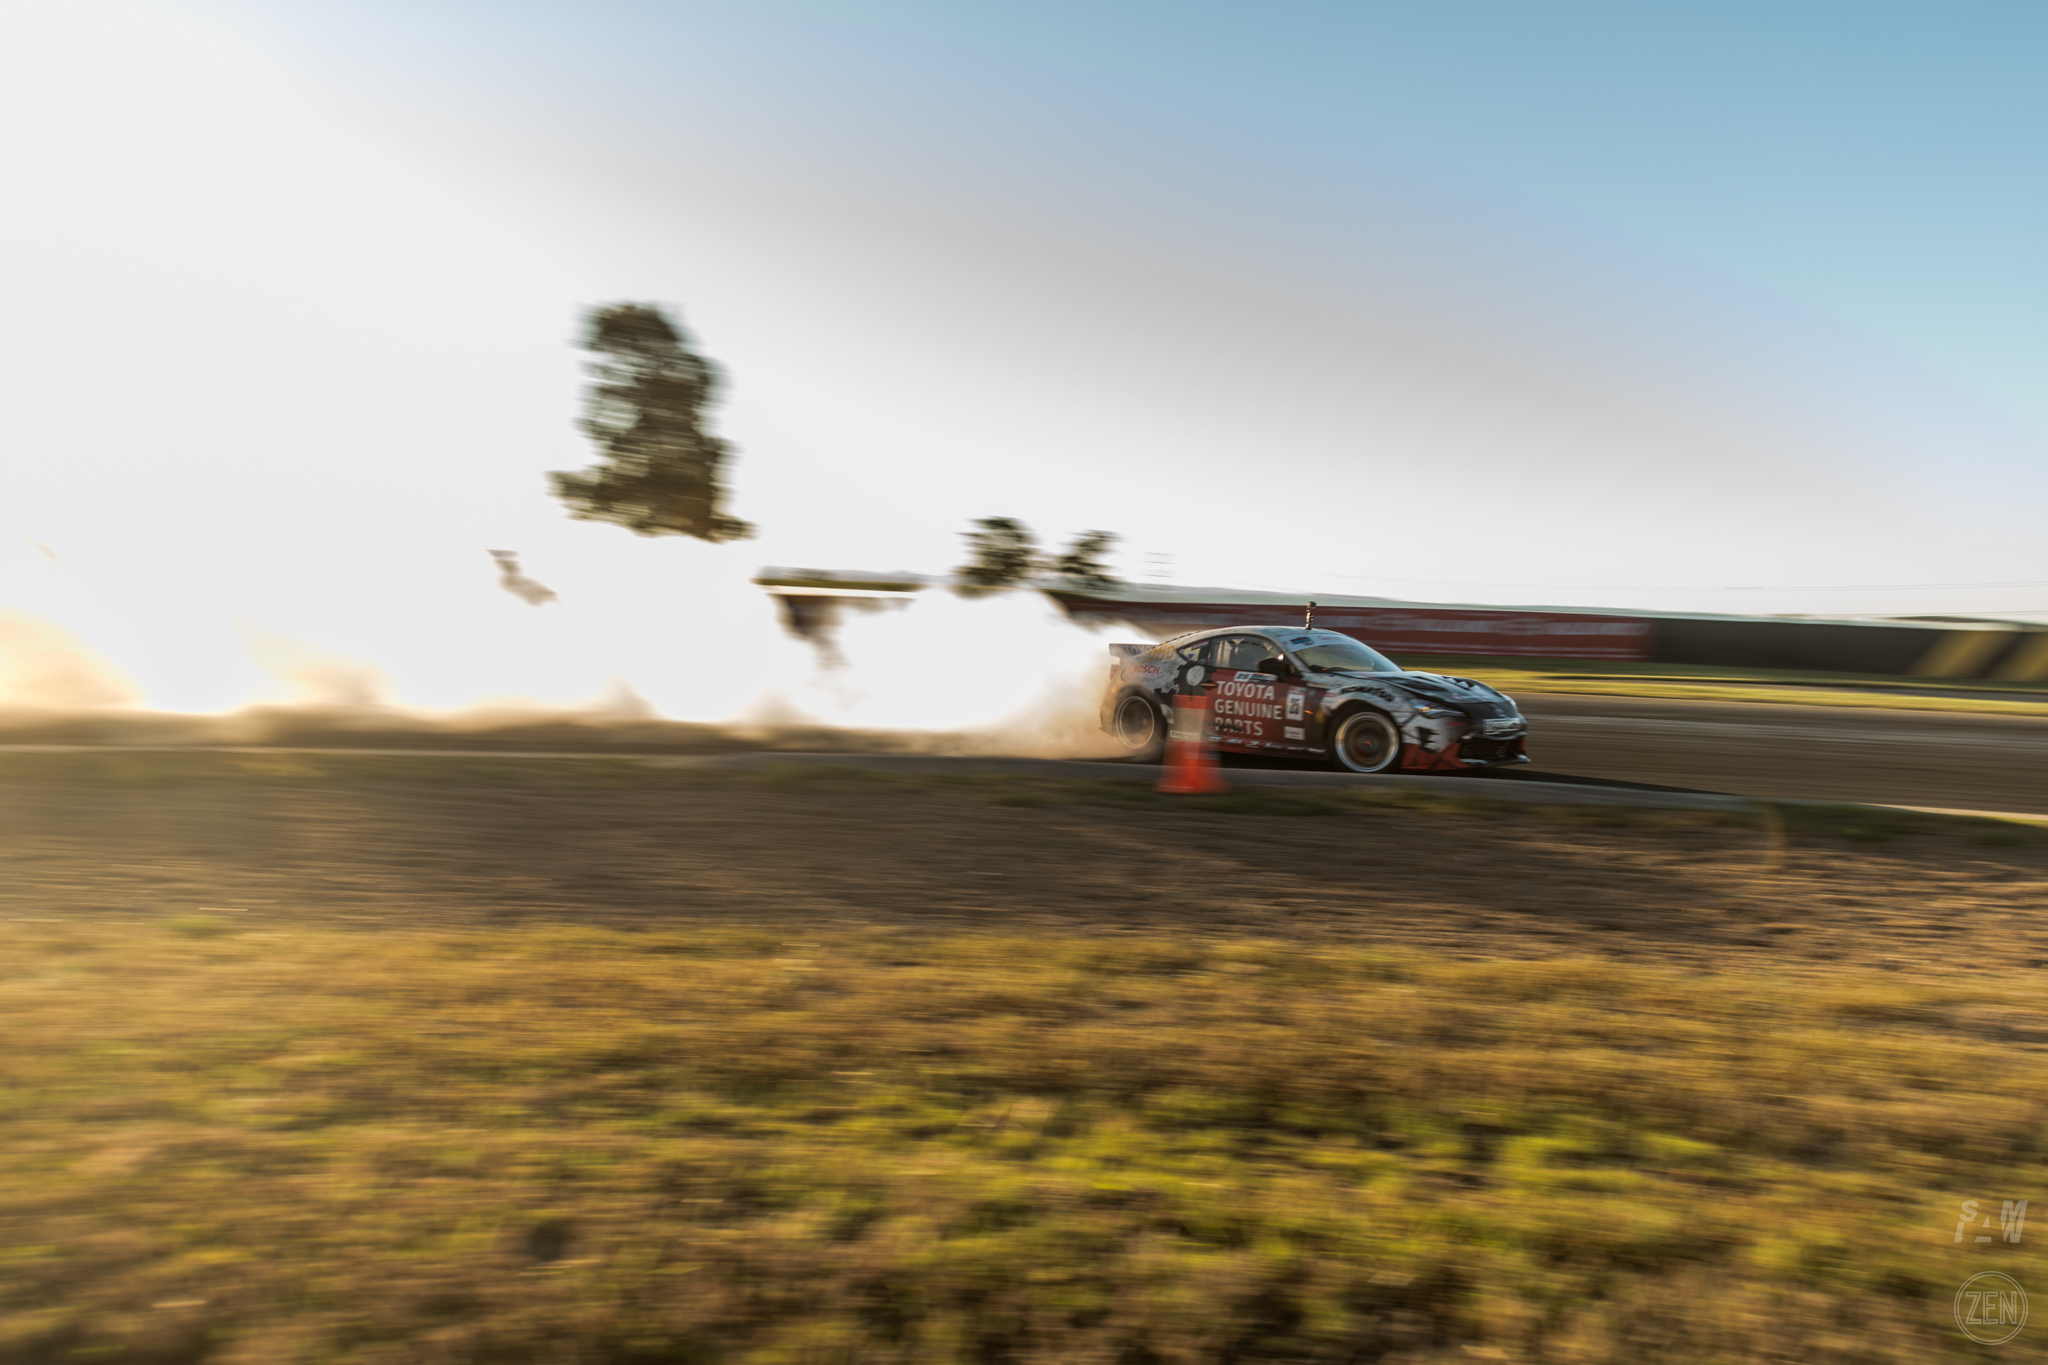 2019-10-18 - WTAC Day 01 063